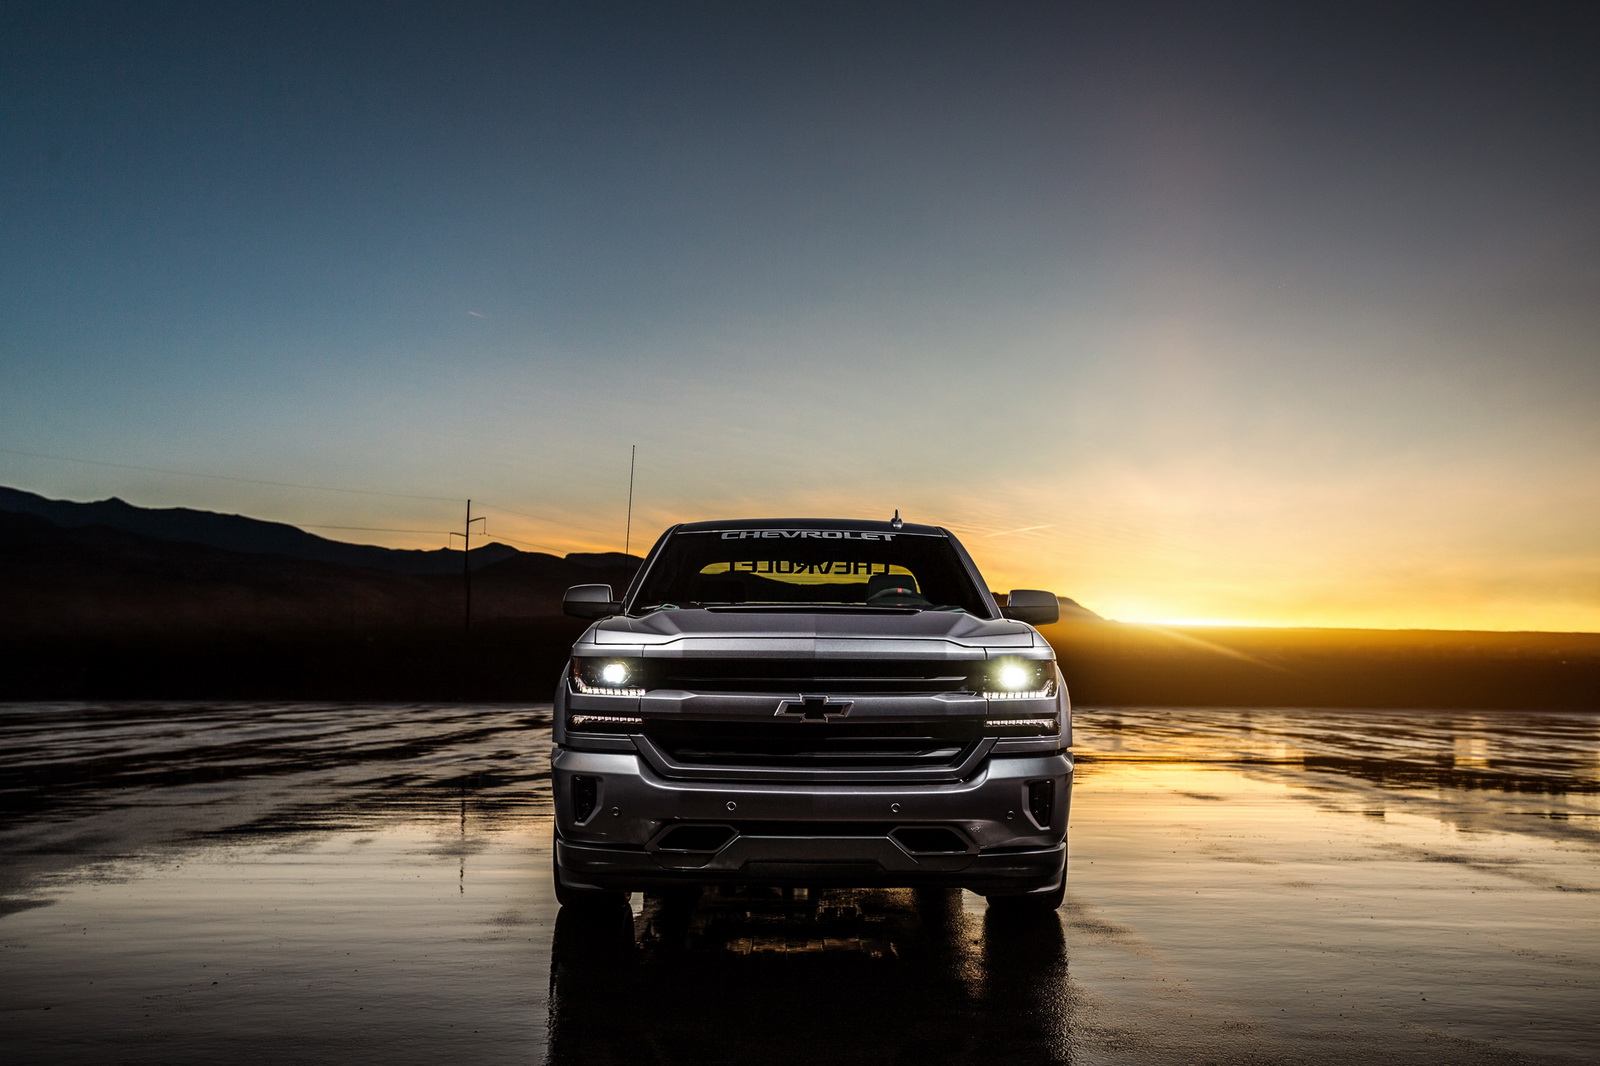 2018 Silverado Performance SEMA Concept with a LT4-style intercooled supercharger system adds 100+ horsepower.